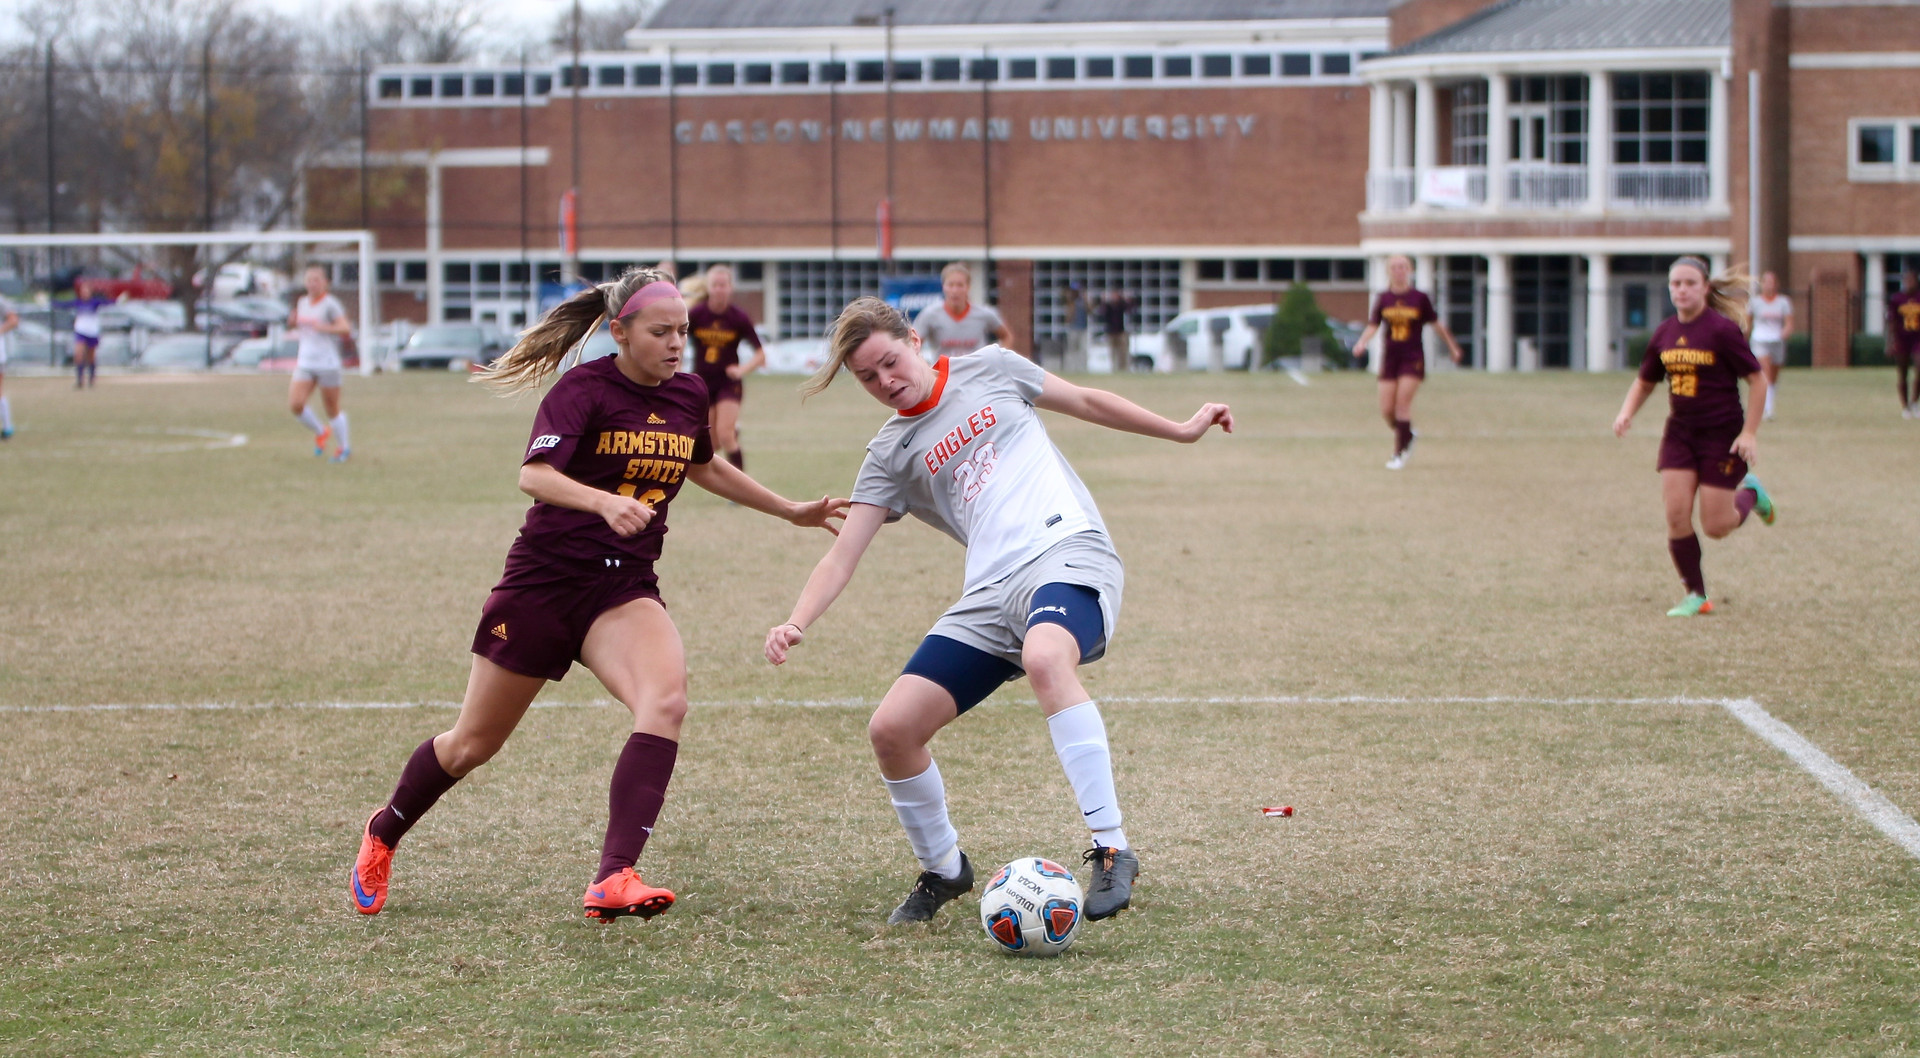 Carson Newman University vs. Armstrong State